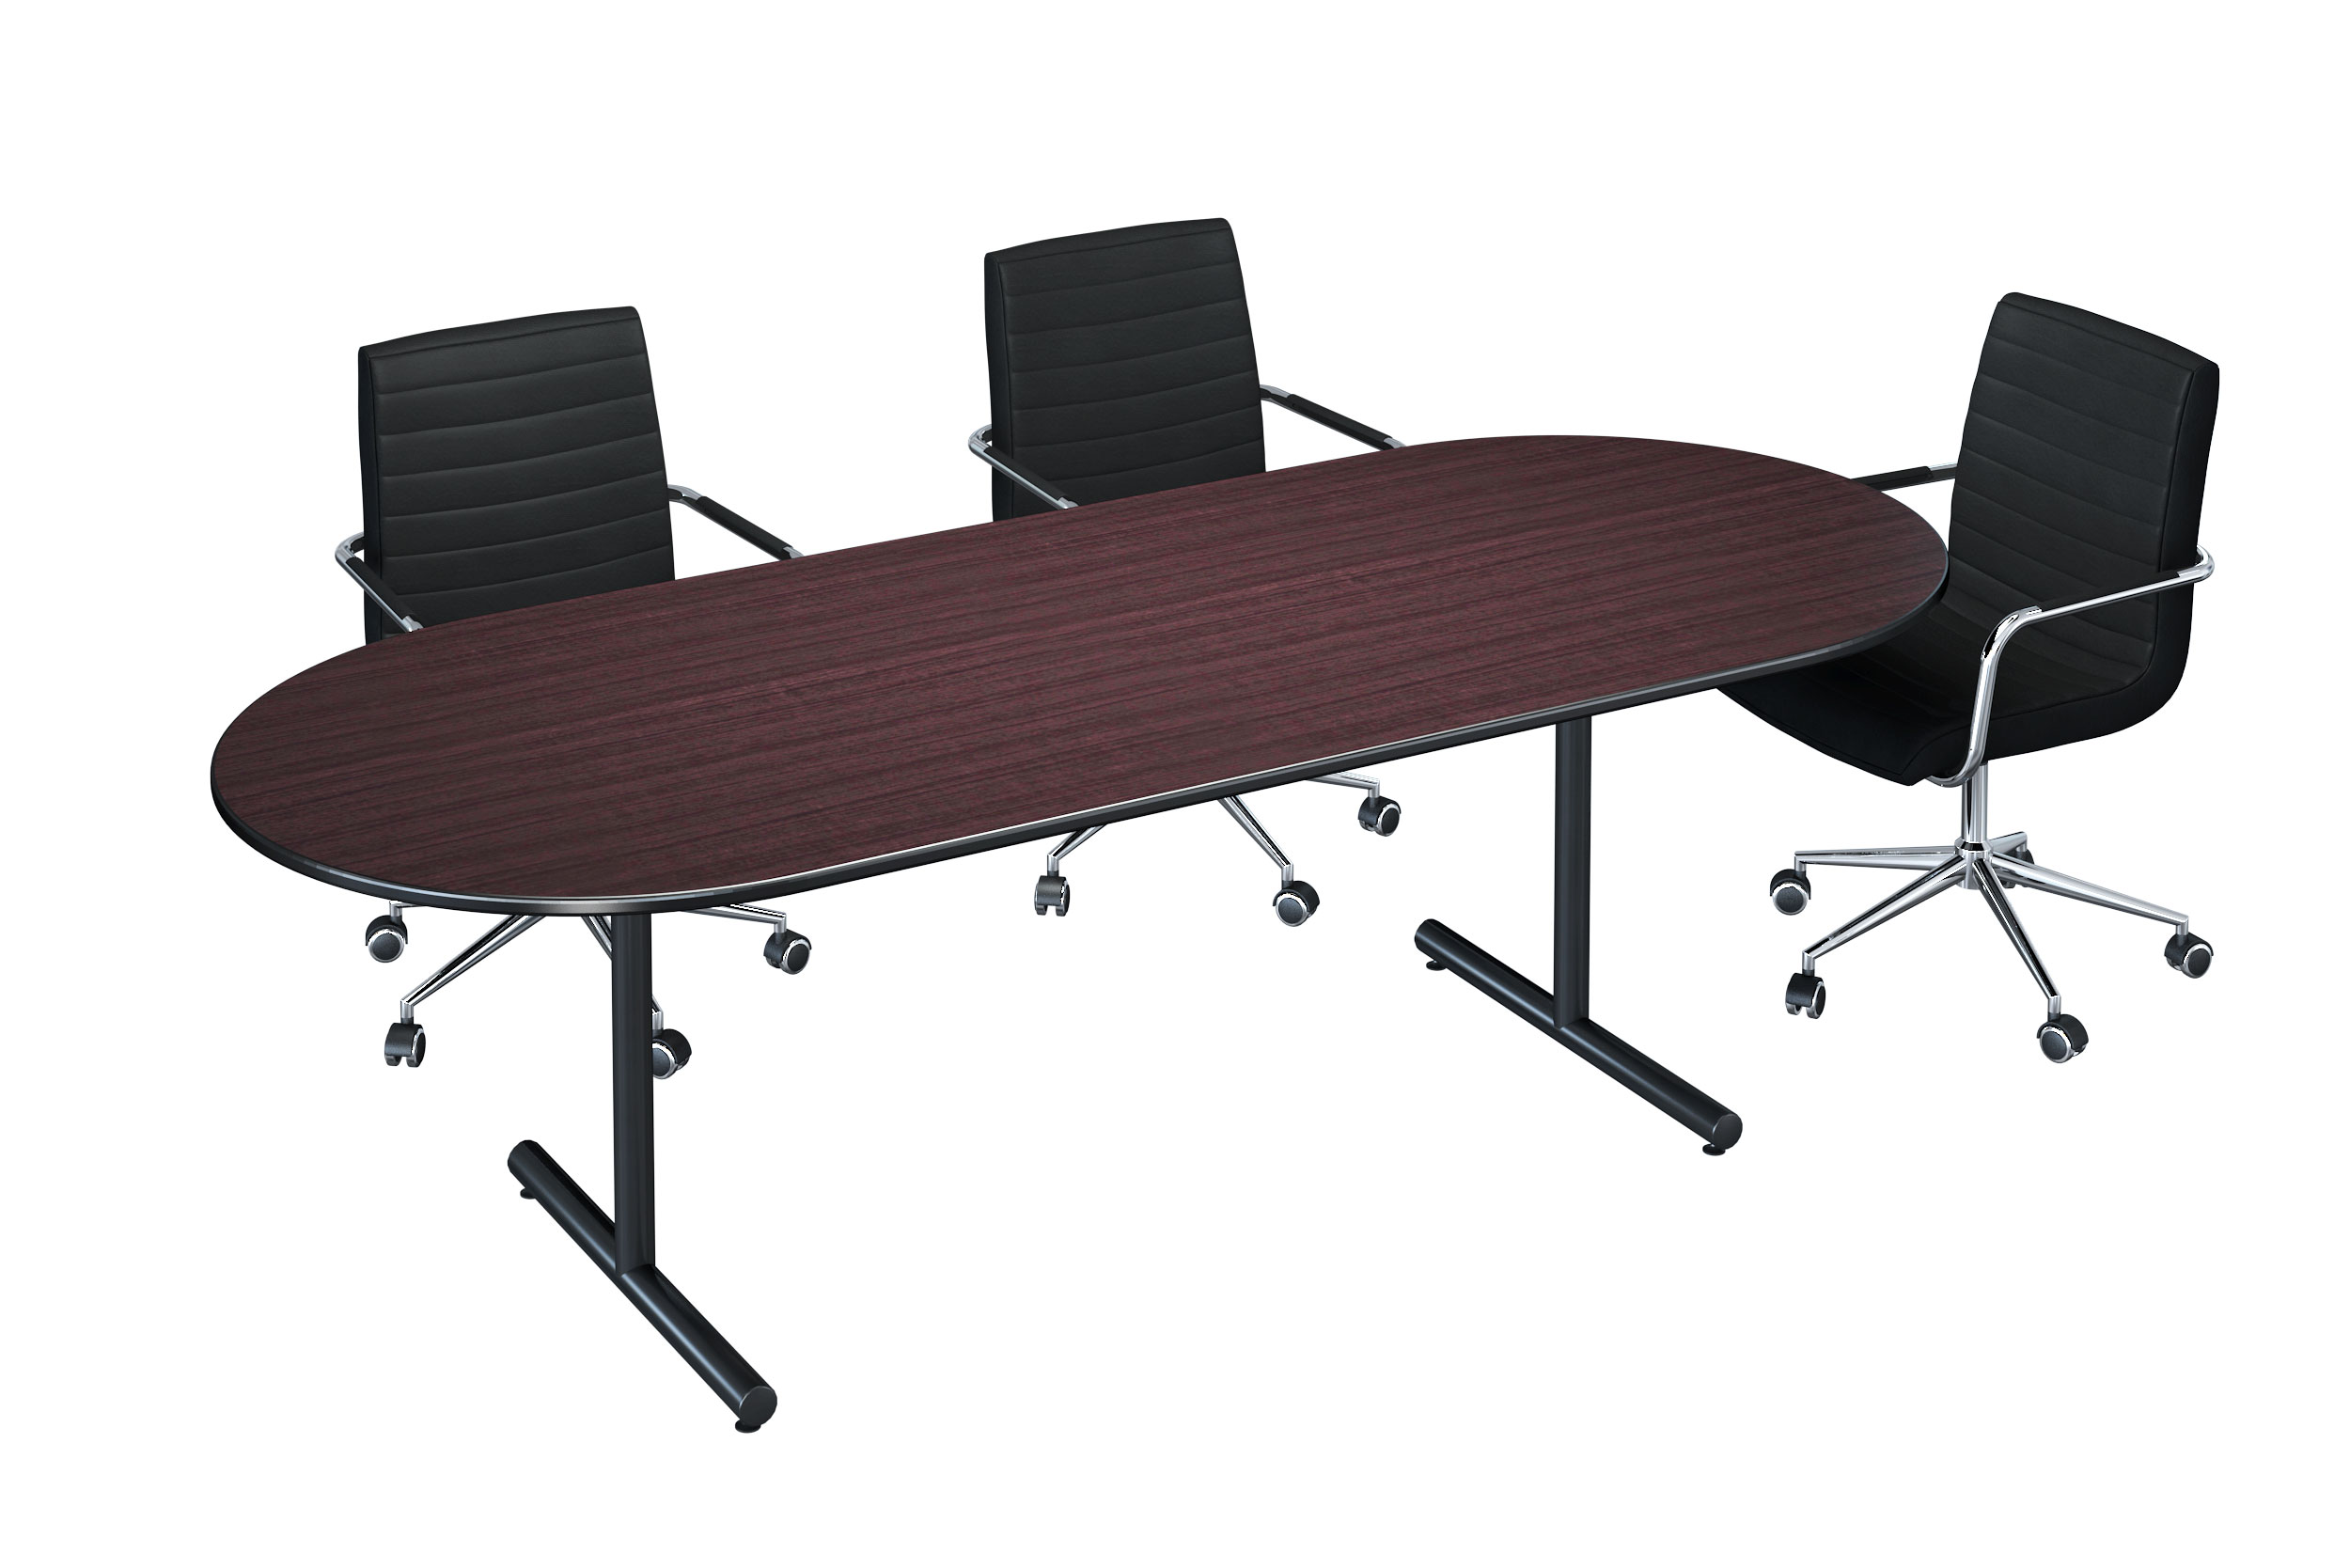 LDF 1450 Series table